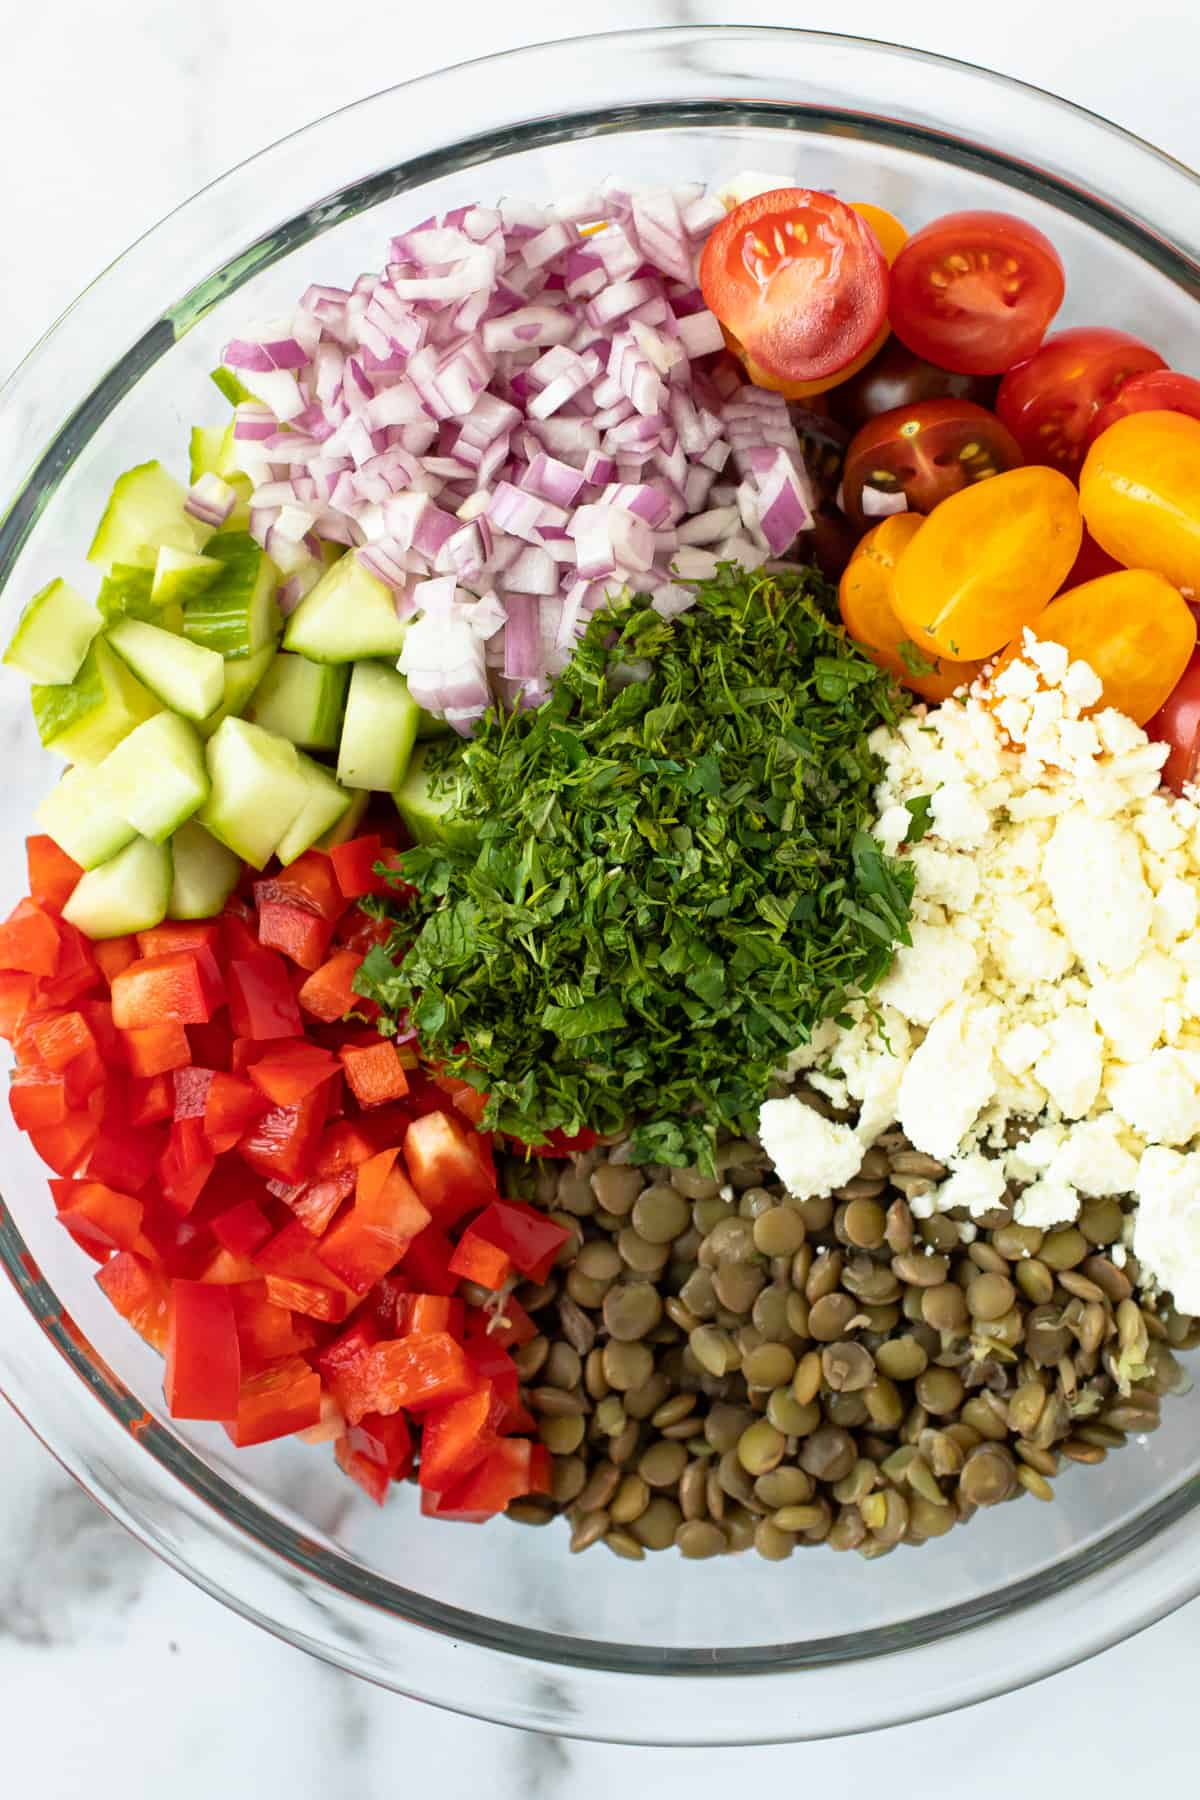 Lentil salad Ingredients in a Bowl